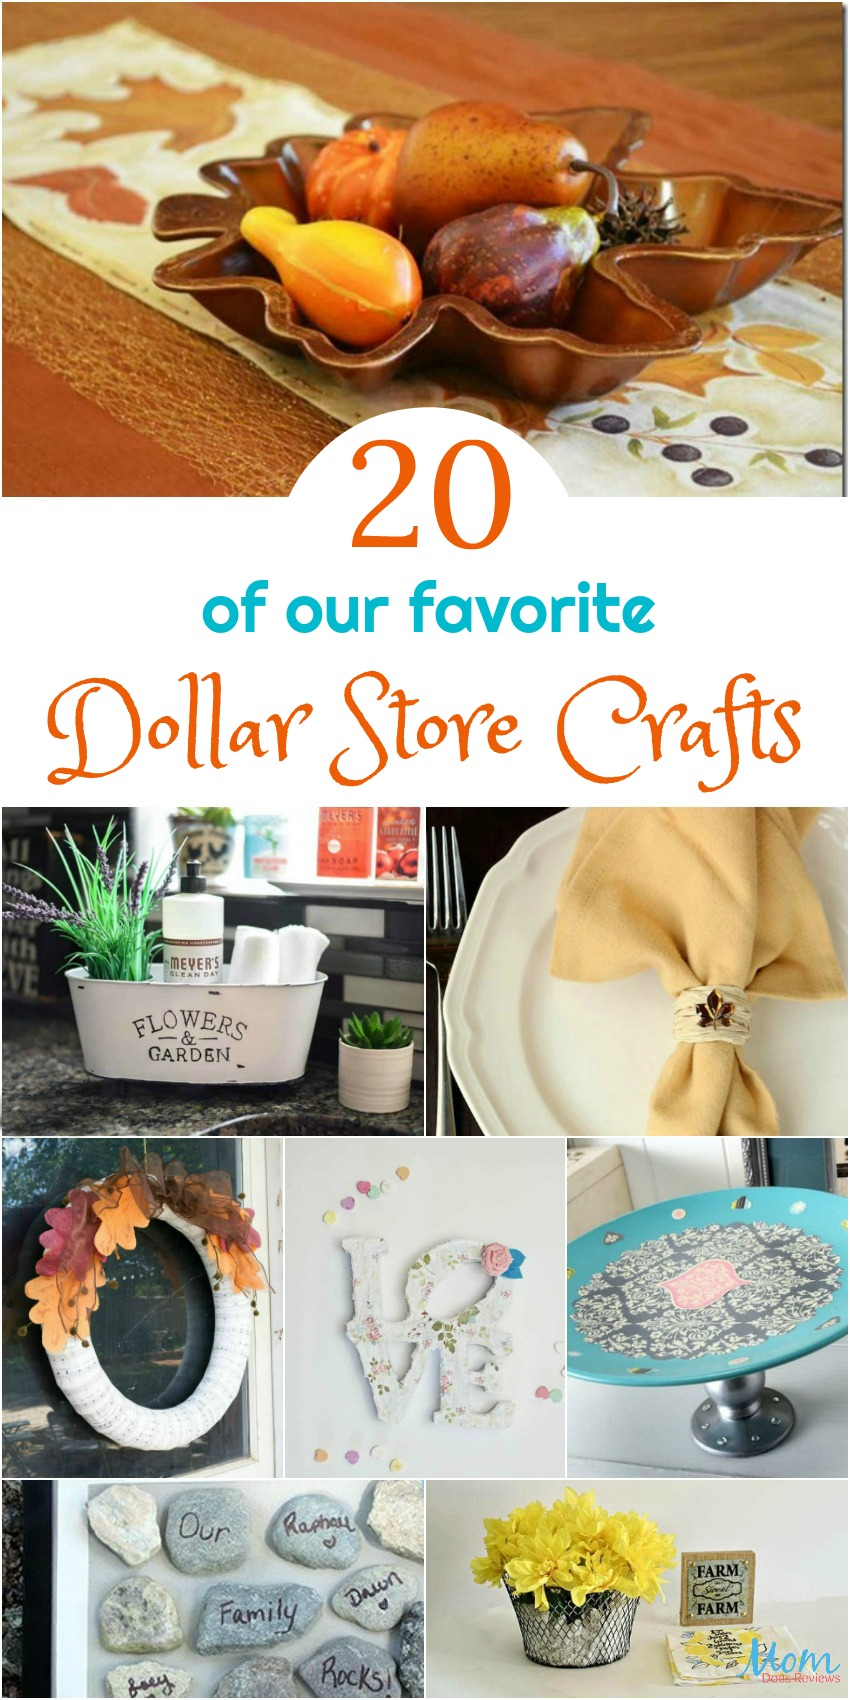 20 of our Favorite Dollar Store Crafts You Have to Make #crafts #dollarstorecrafts #diy